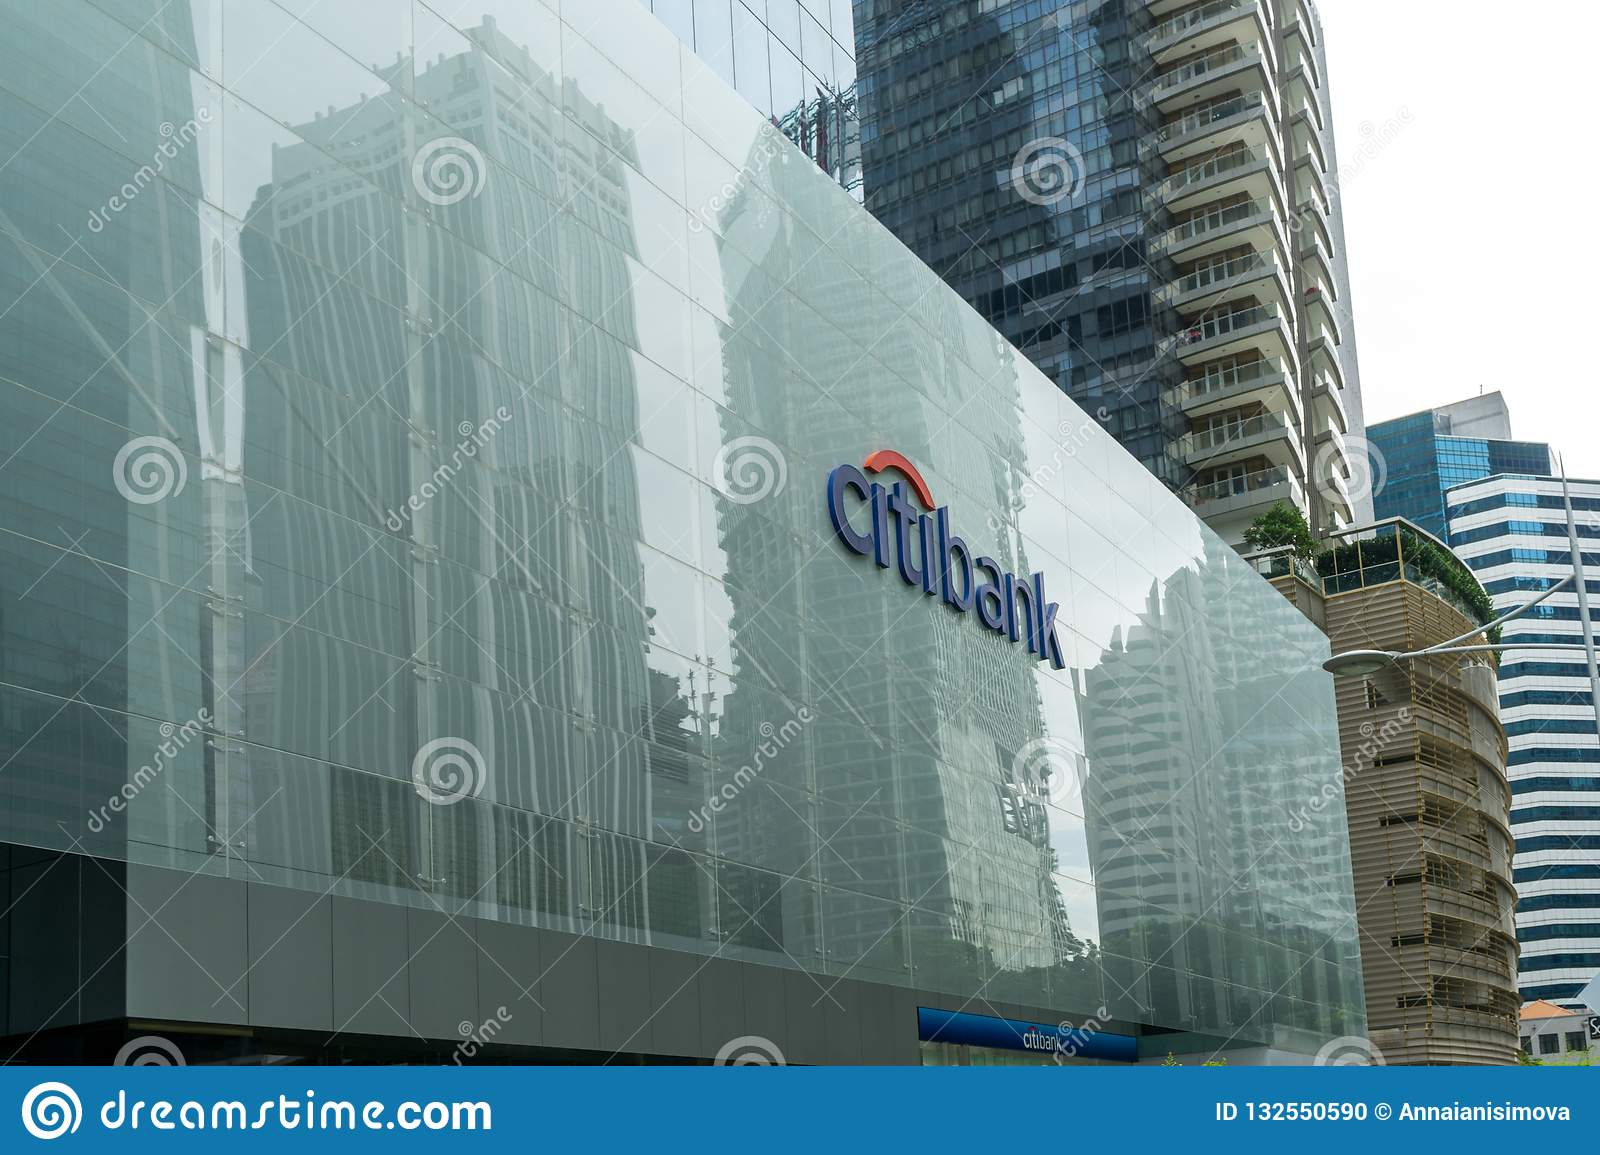 Citibank assina